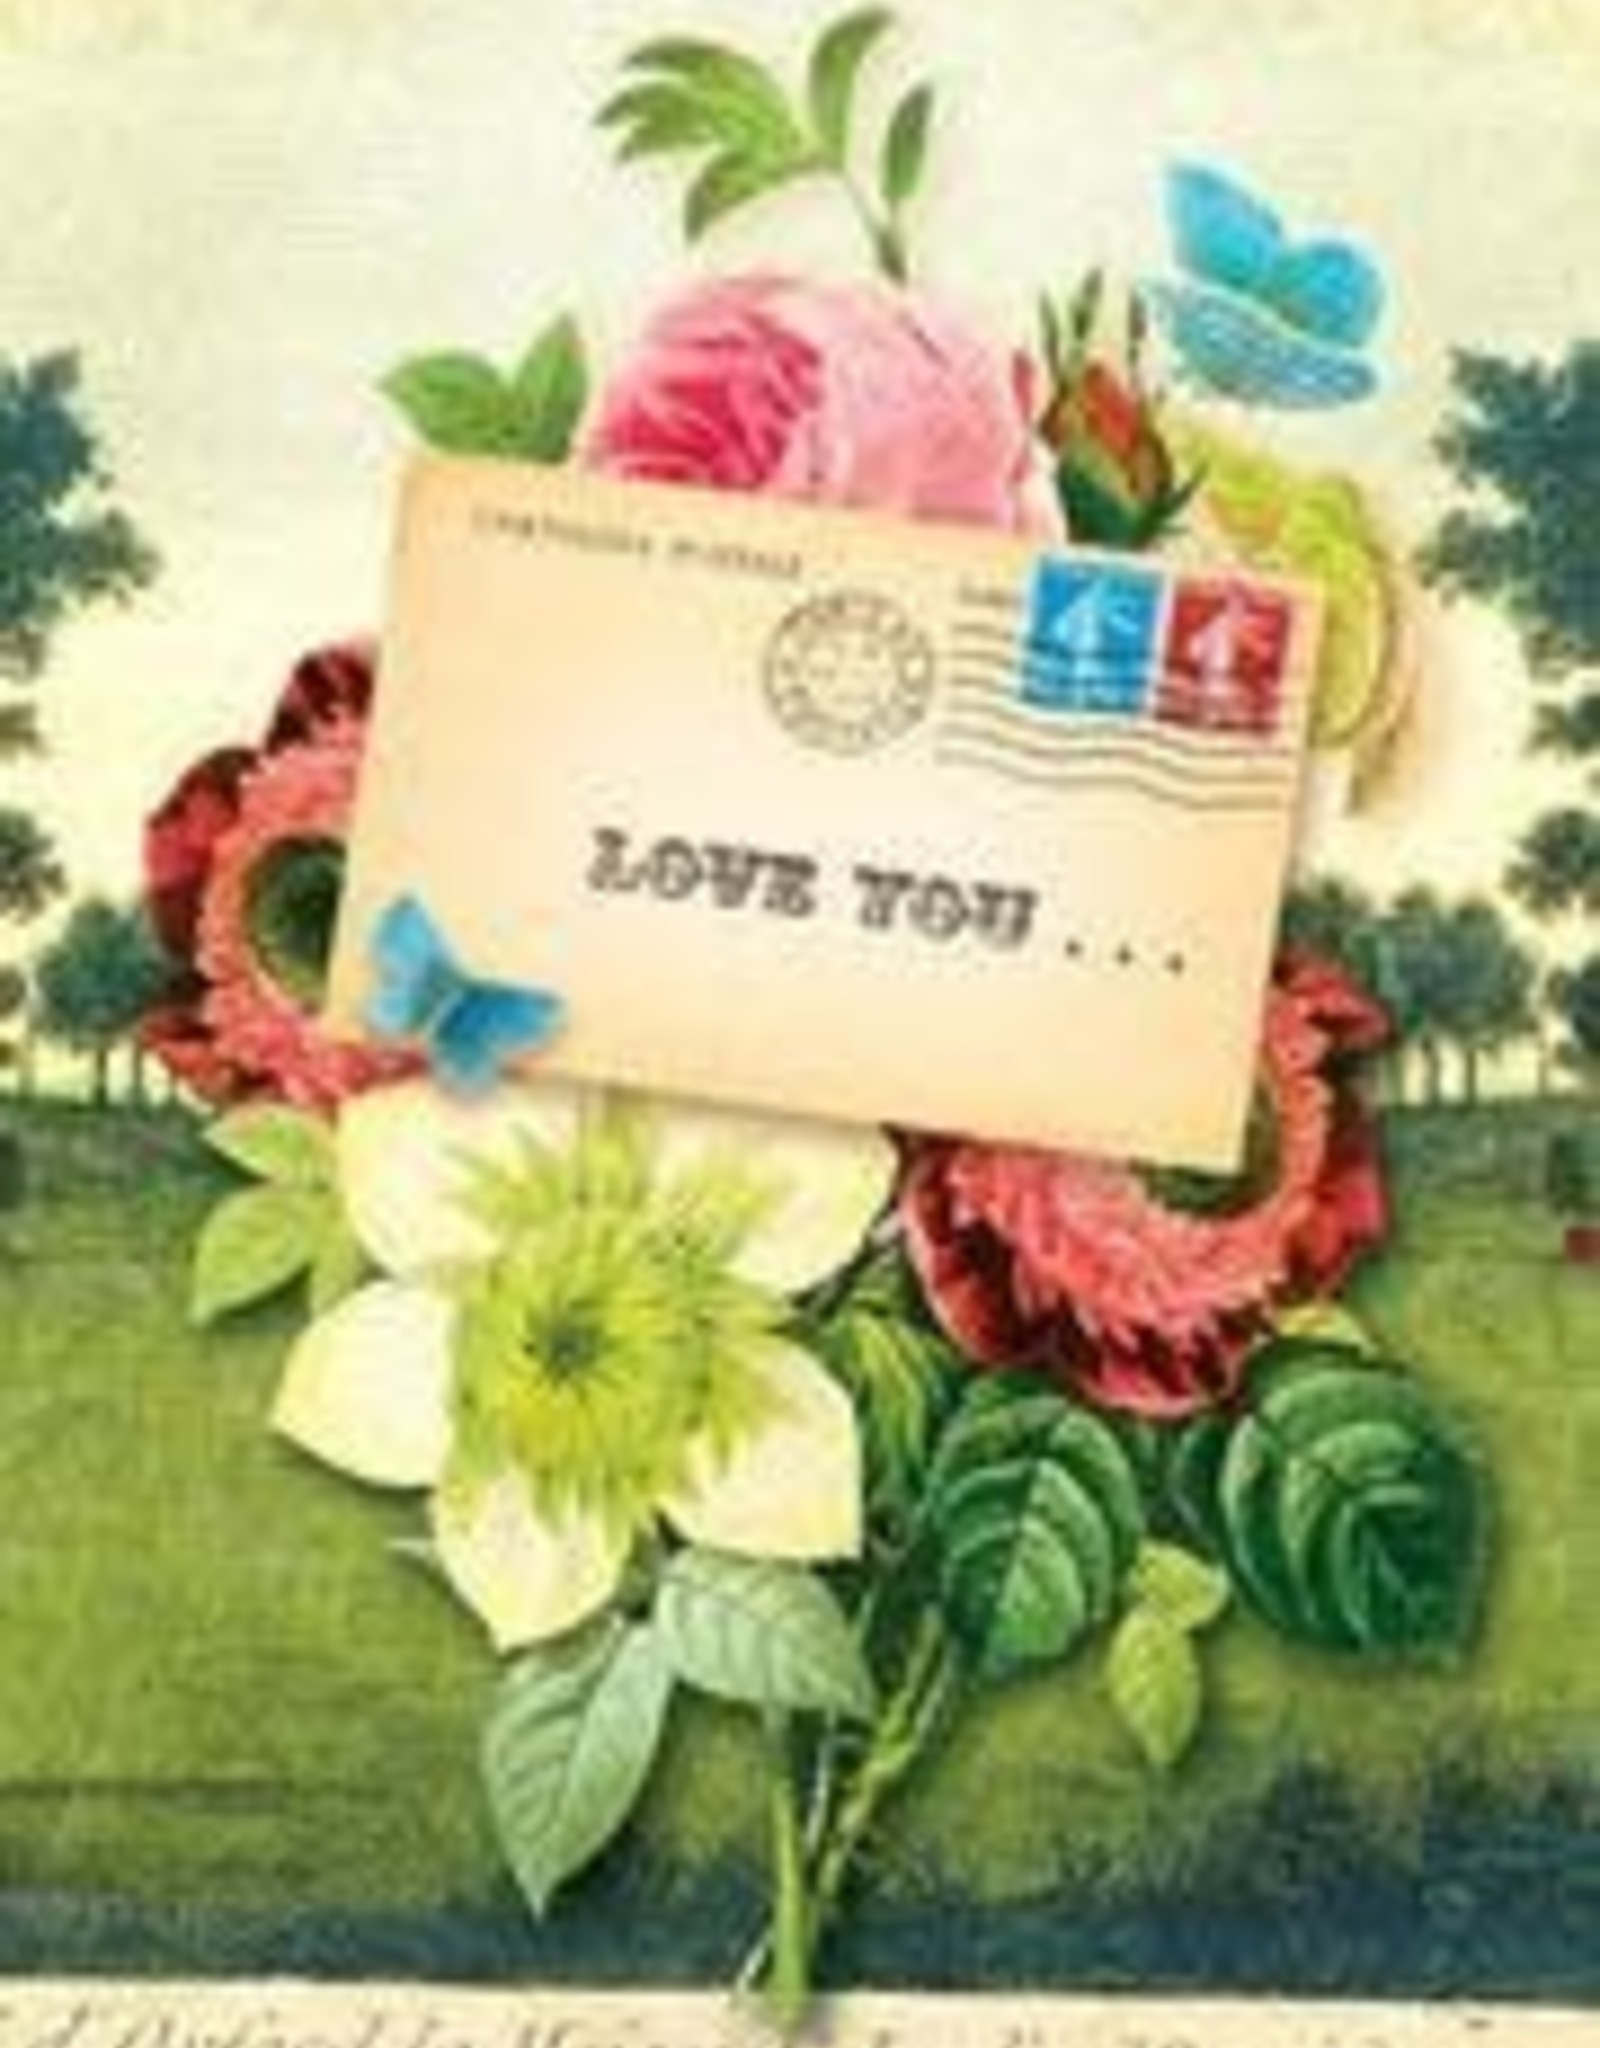 CARD-JUST BECAUSE-LOVE YOU